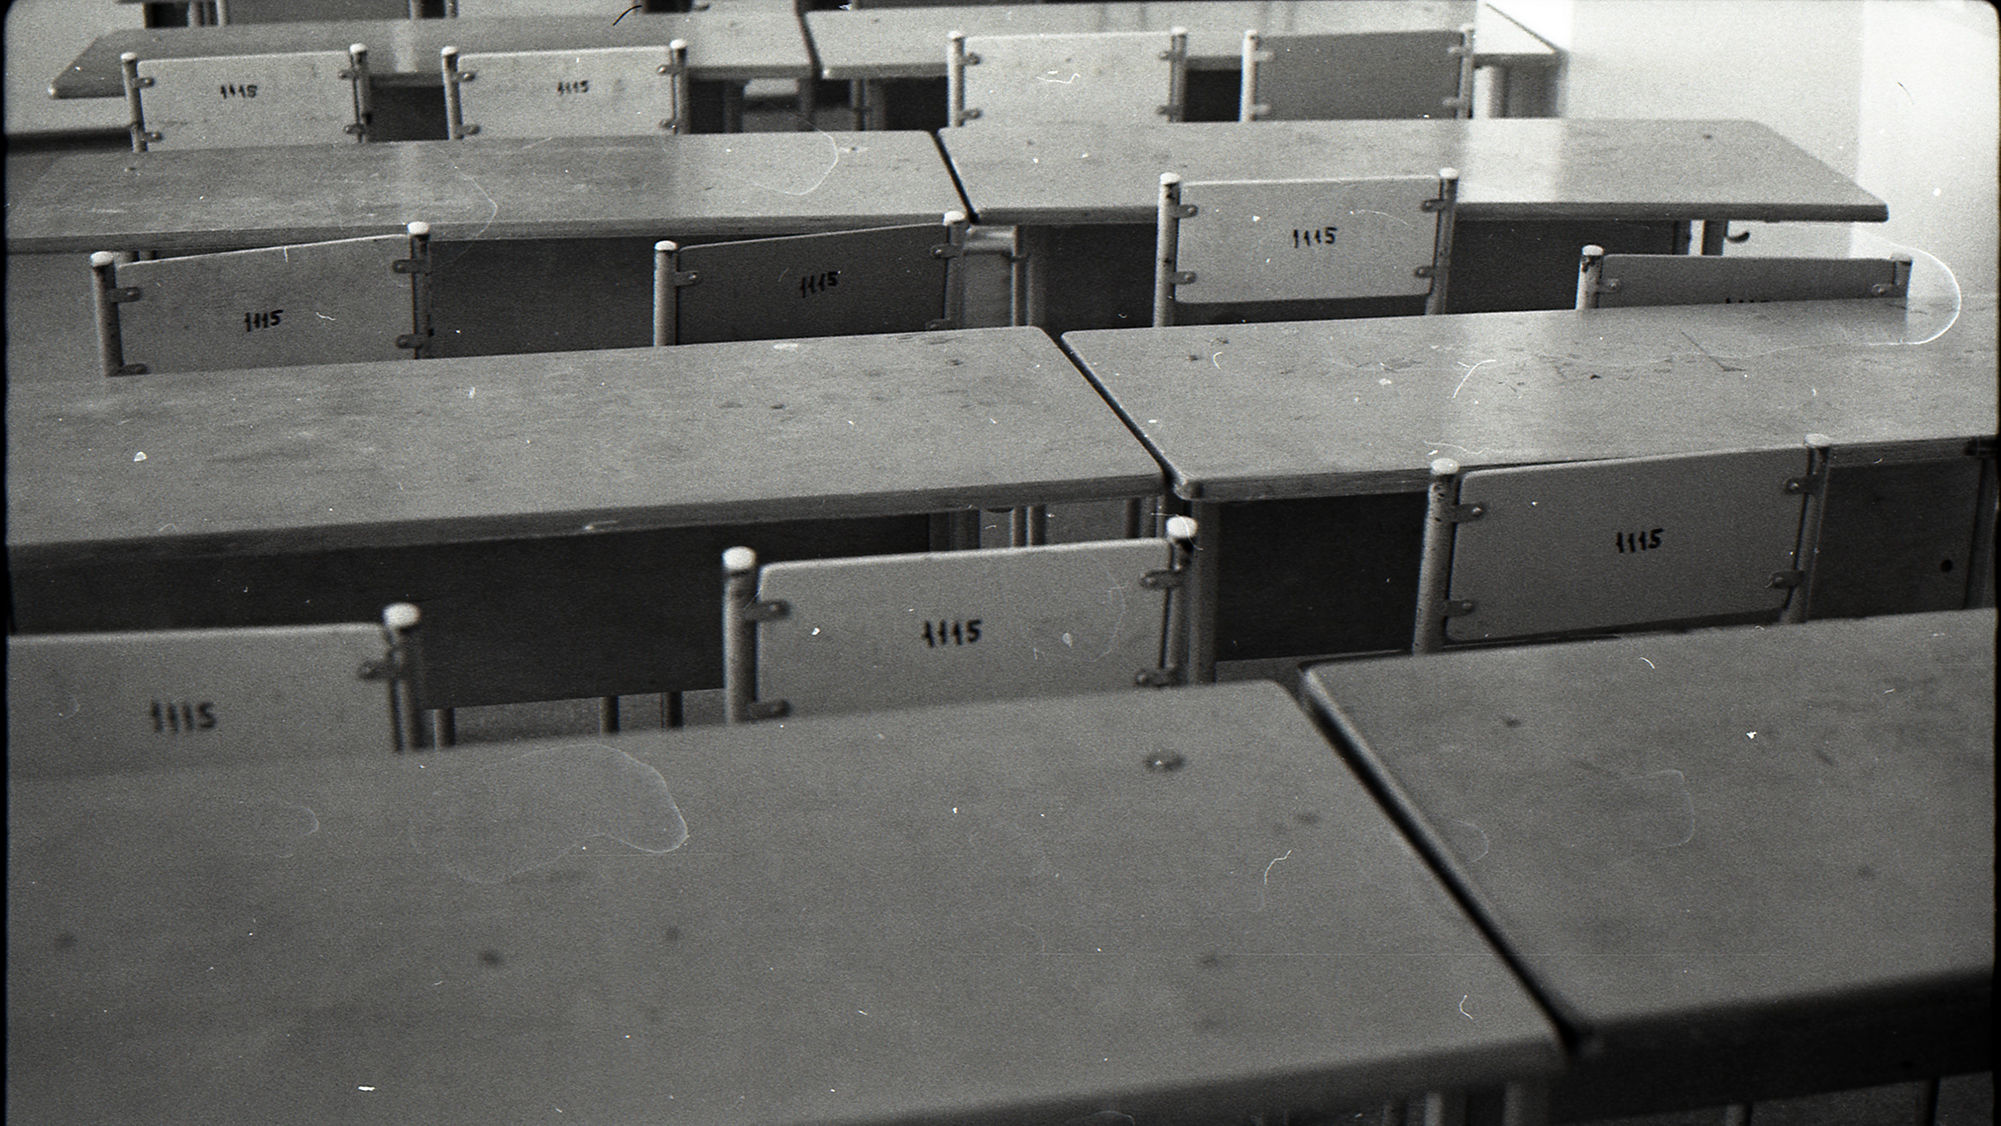 black and white photo of empty, wooden desks and chairs set up in rows in a classroom.